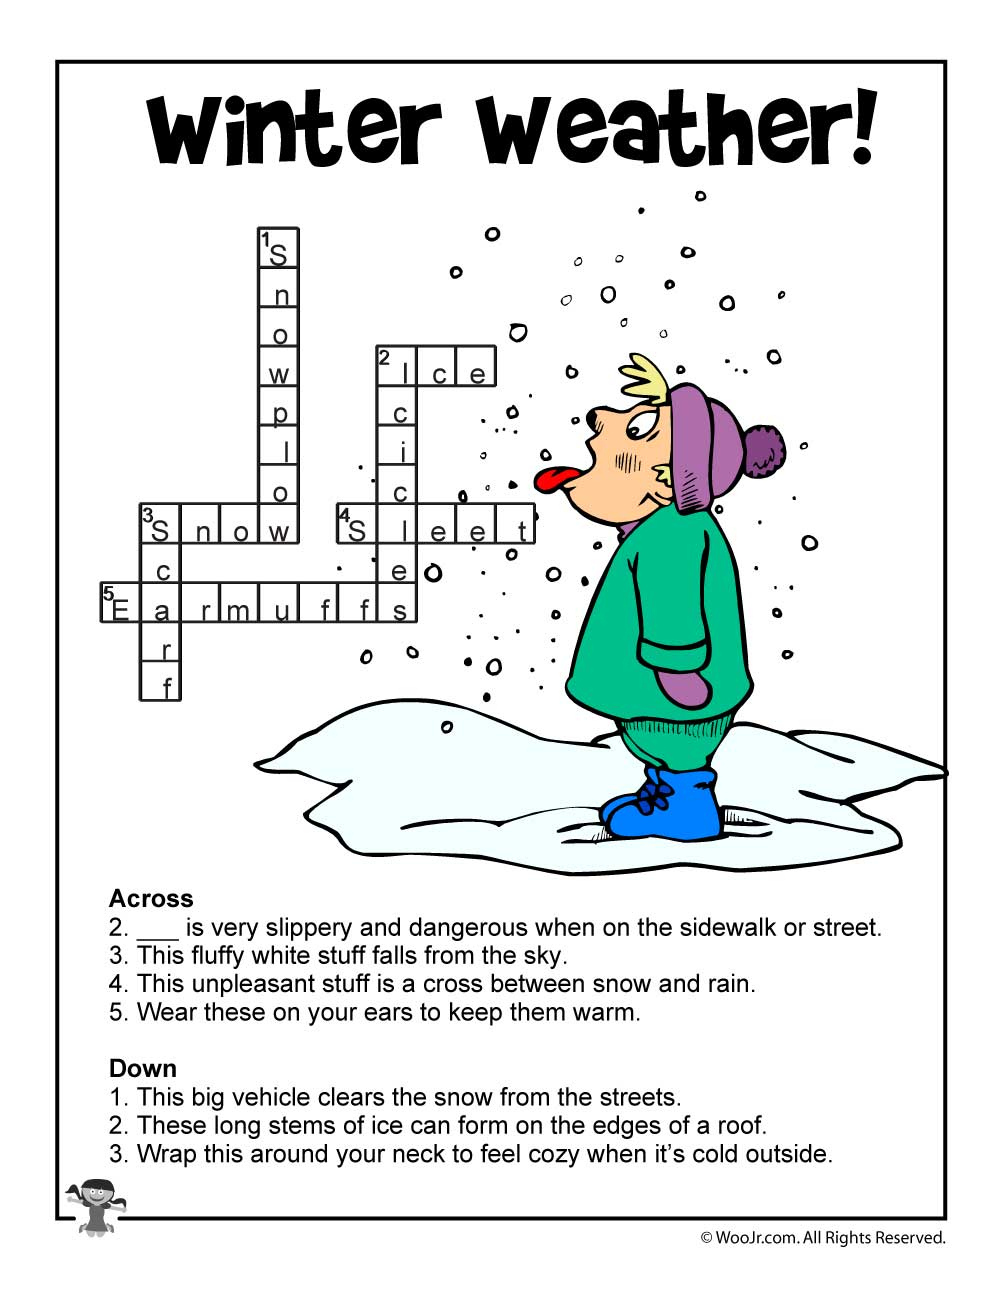 Winter Weather Crossword Puzzle Answer Key | Woo! Jr. Kids Activities - Winter Crossword Puzzle Printable